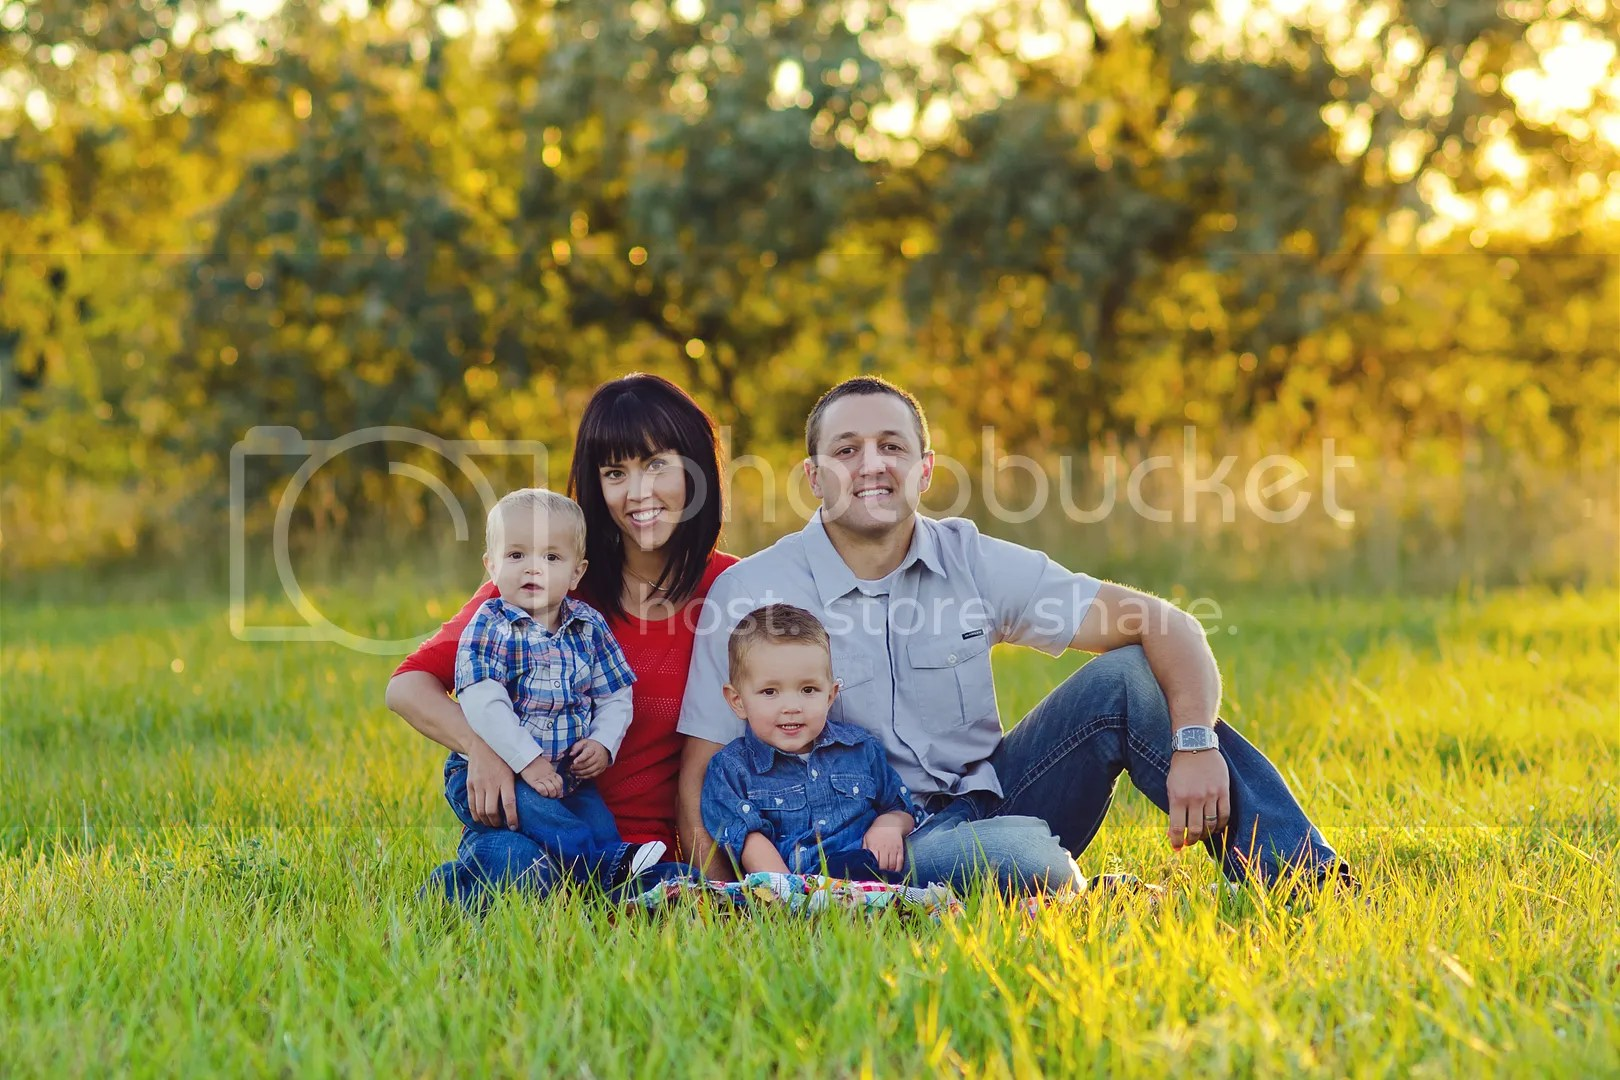 photo Smithfamily2014_KaraSimmons_1_zps5318e6fa.jpg